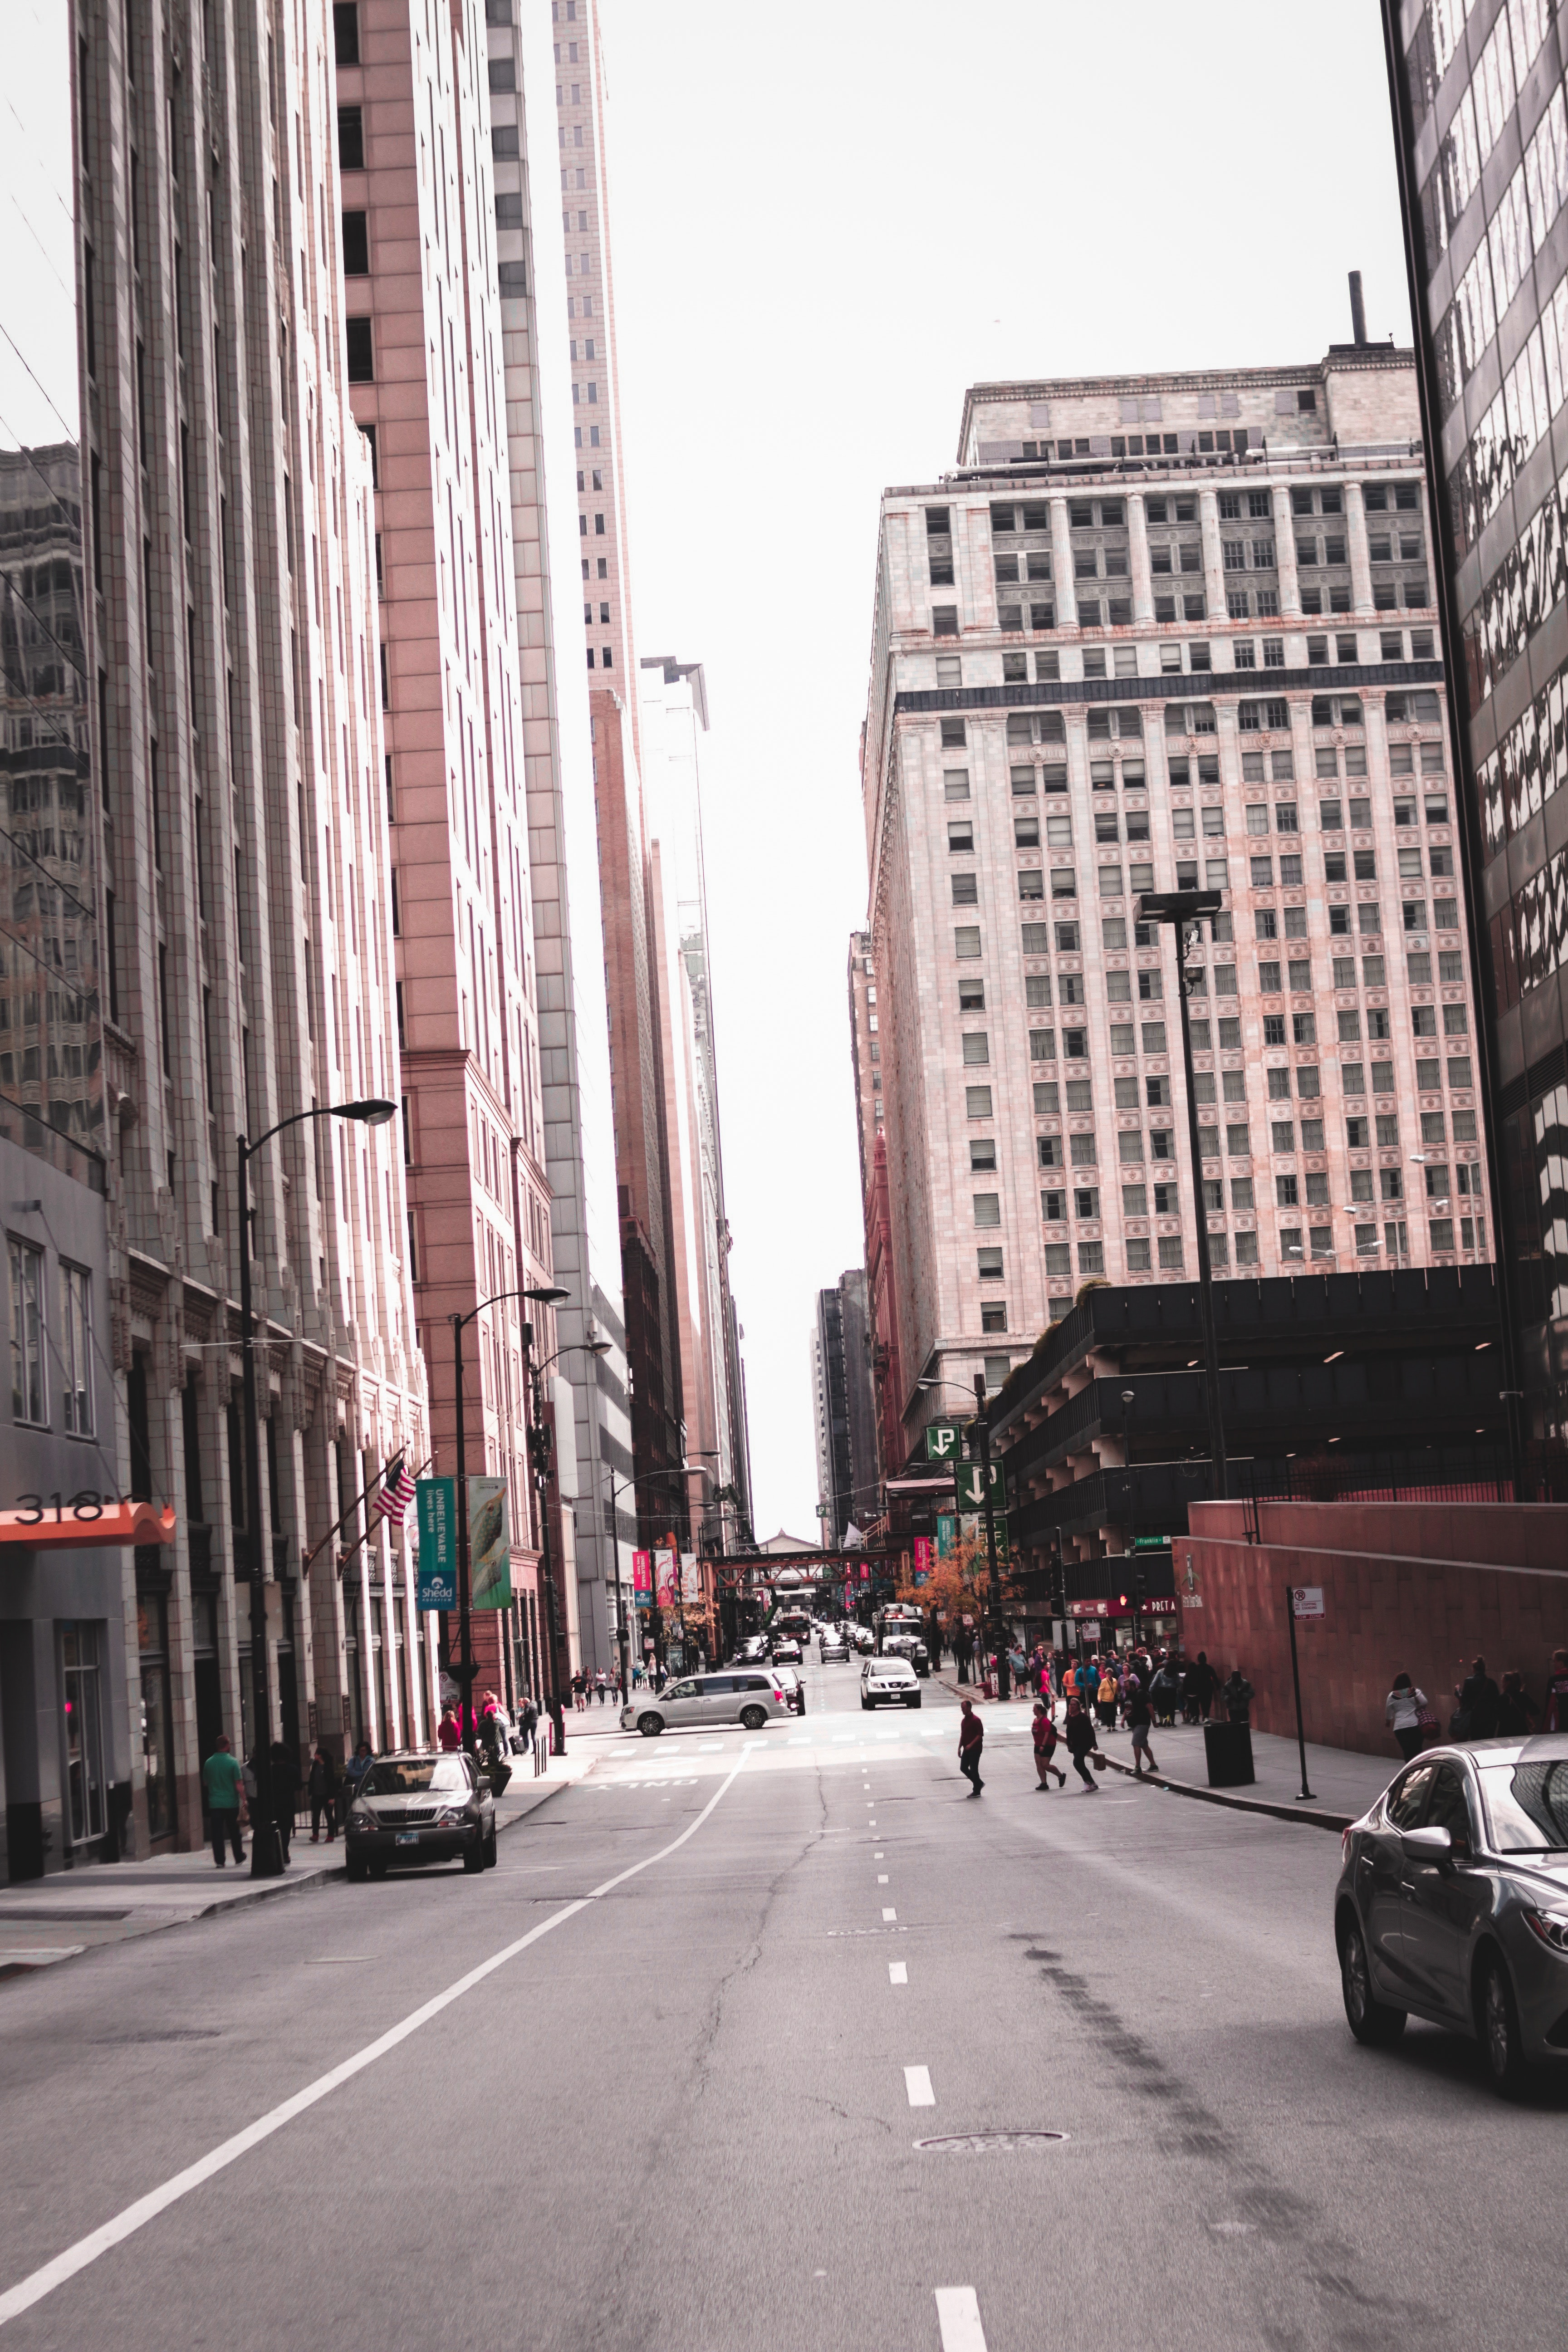 Photo of People Crossing Through Street in the Middle of Buildings, Architecture, Urban, Travel, Transportation system, HQ Photo